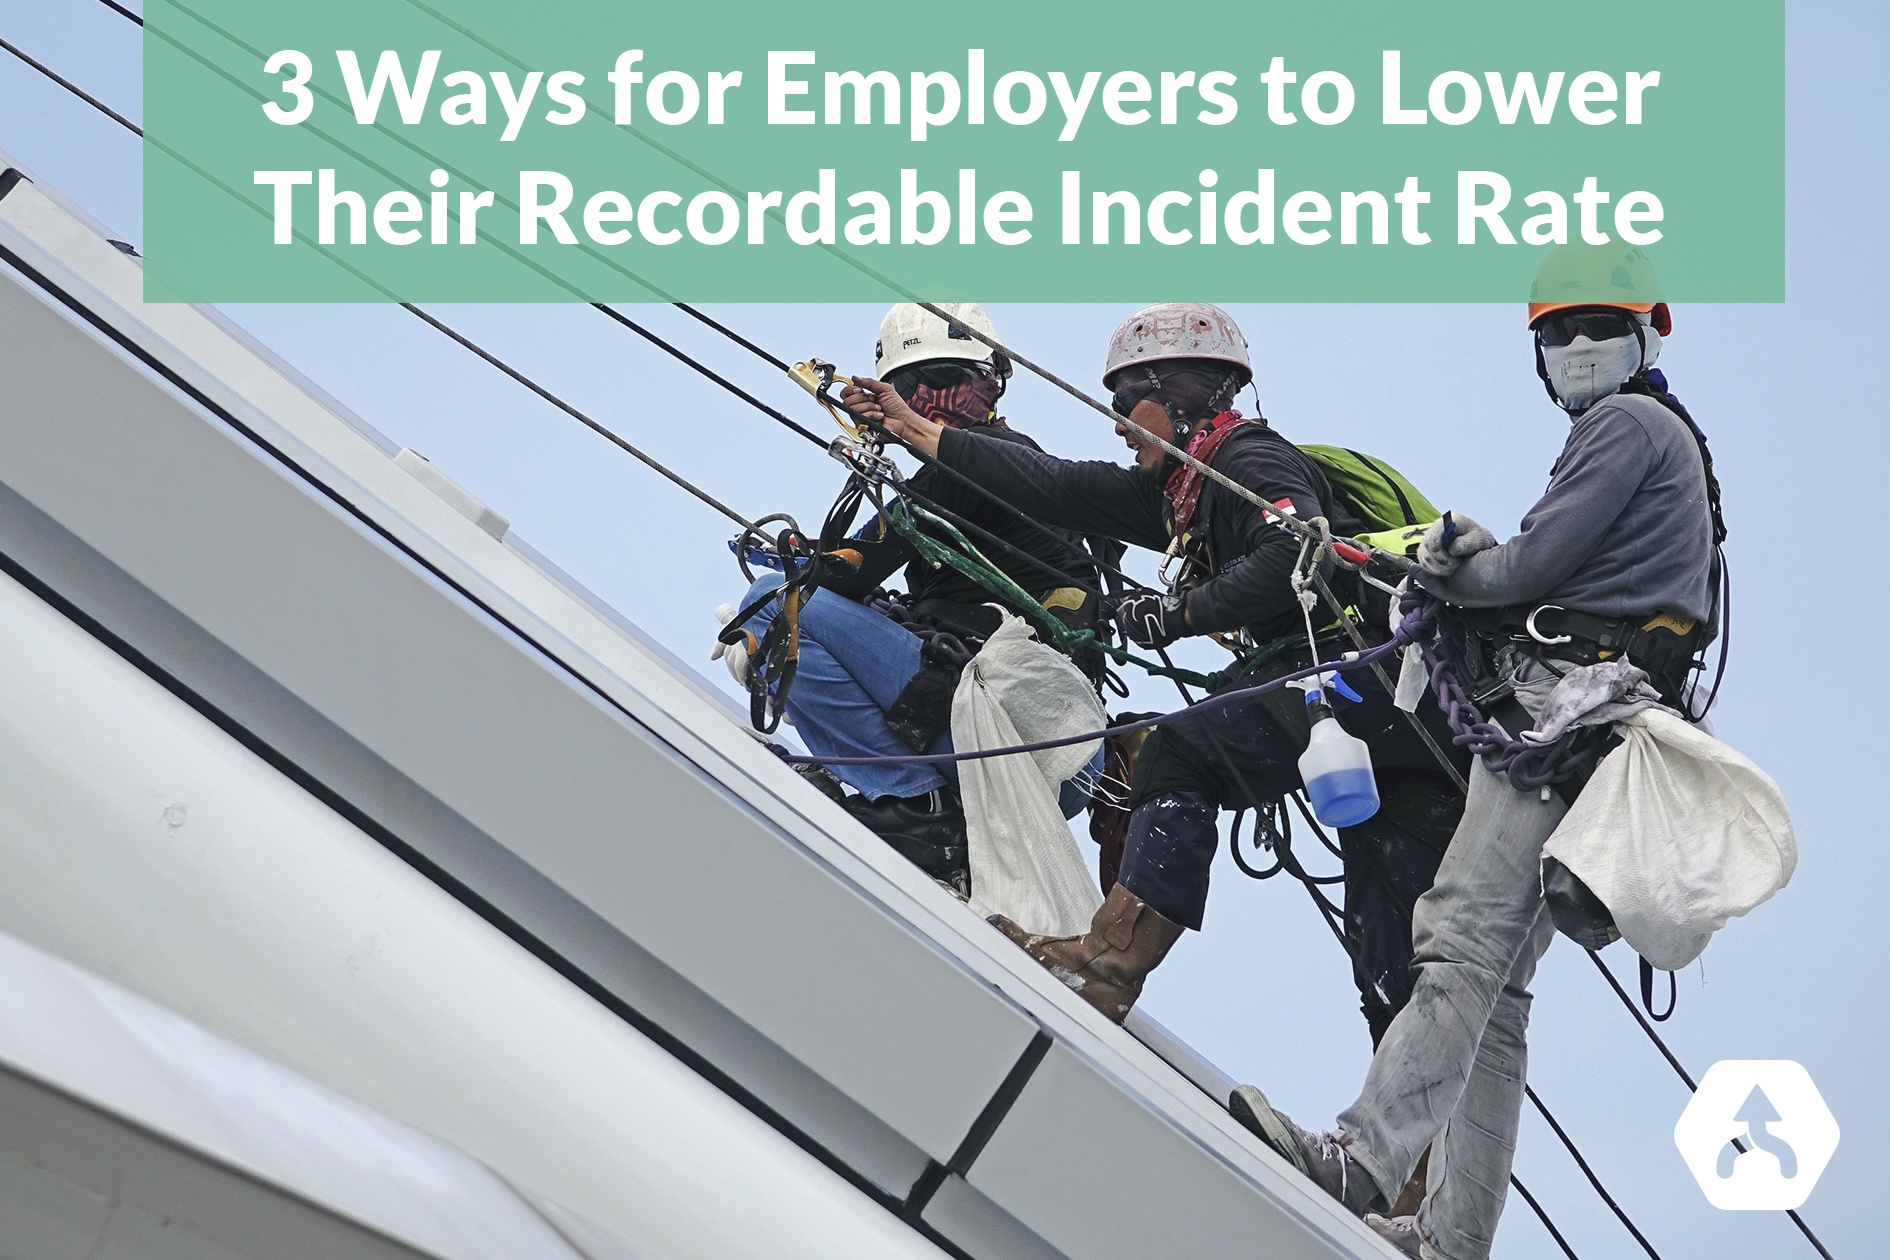 3 ways for employers to lower their recordable incident rate